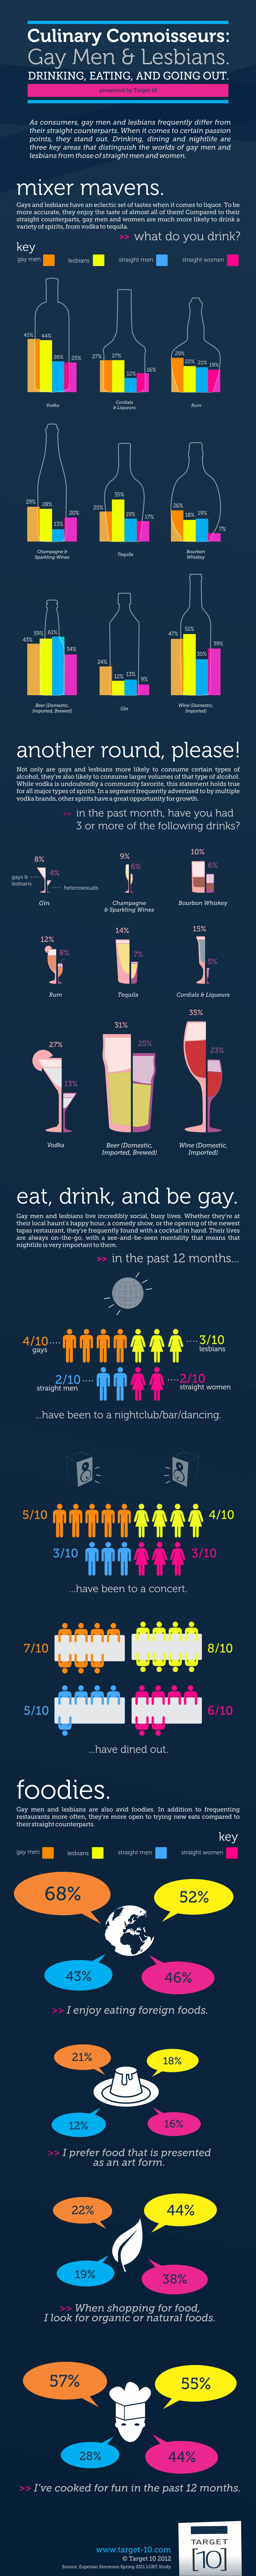 Gay Lifestyle Facts-Infographic